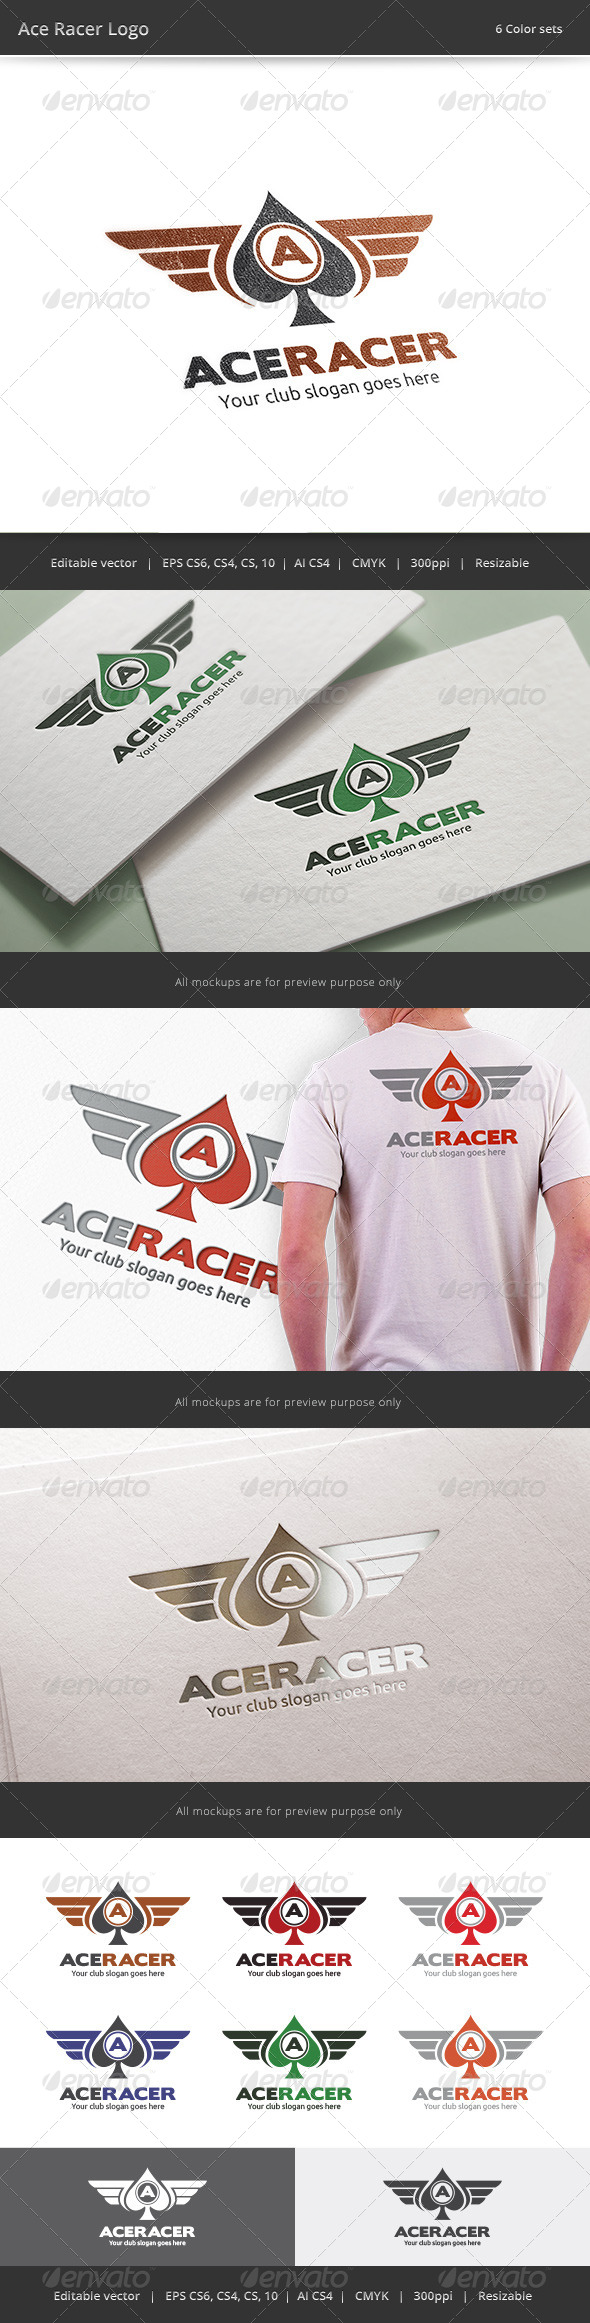 GraphicRiver Ace Racer Logo 8004908